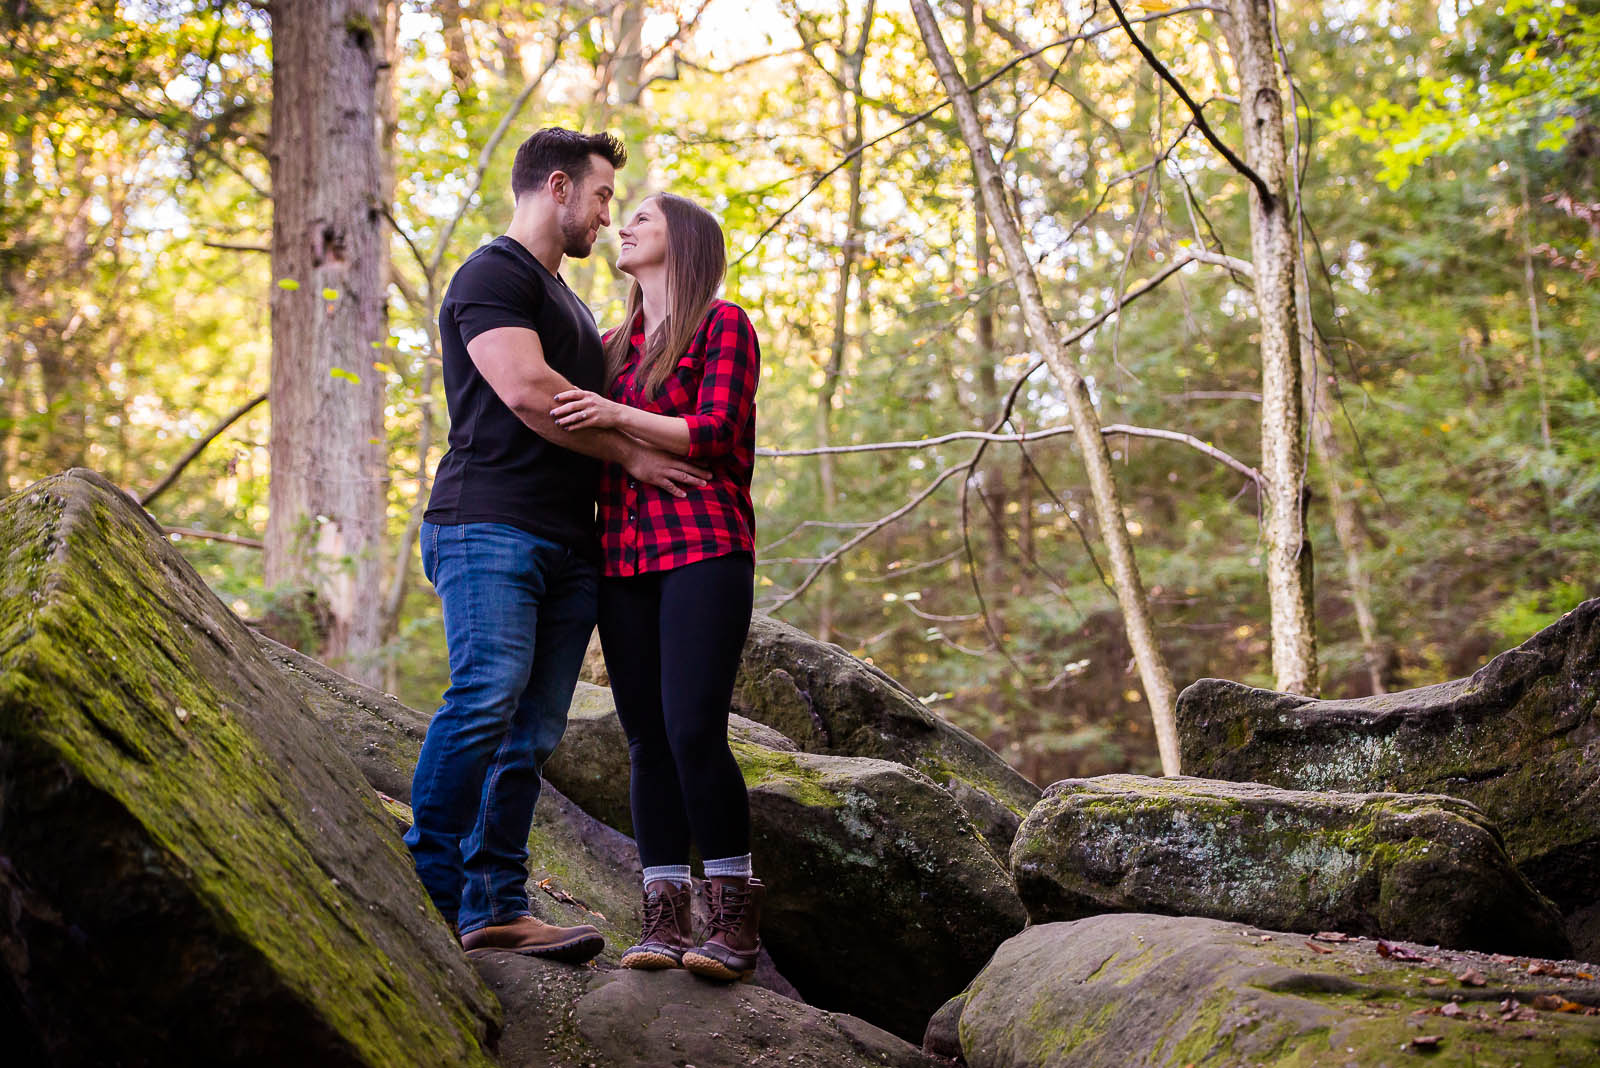 Eric_and_Christy_Photography_Blog_Stephanie_Nick_Engagement-2